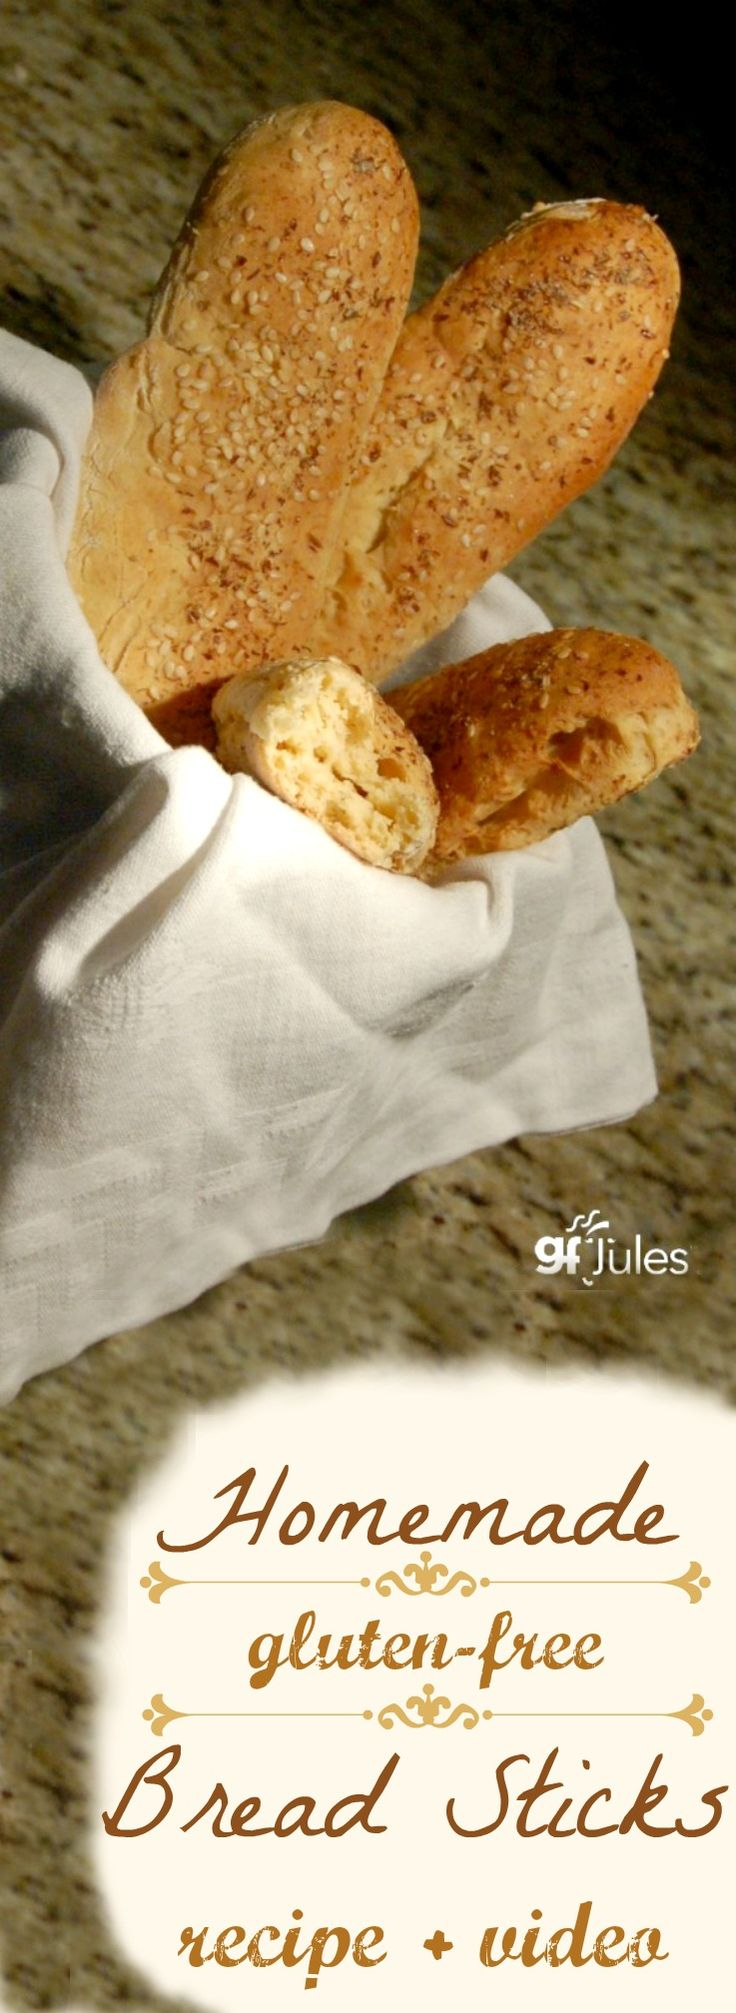 80 best gluten free thanksgiving recipes images on pinterest soft and yummy homemade gluten free breadsticks with recipe and easy how to video forumfinder Image collections